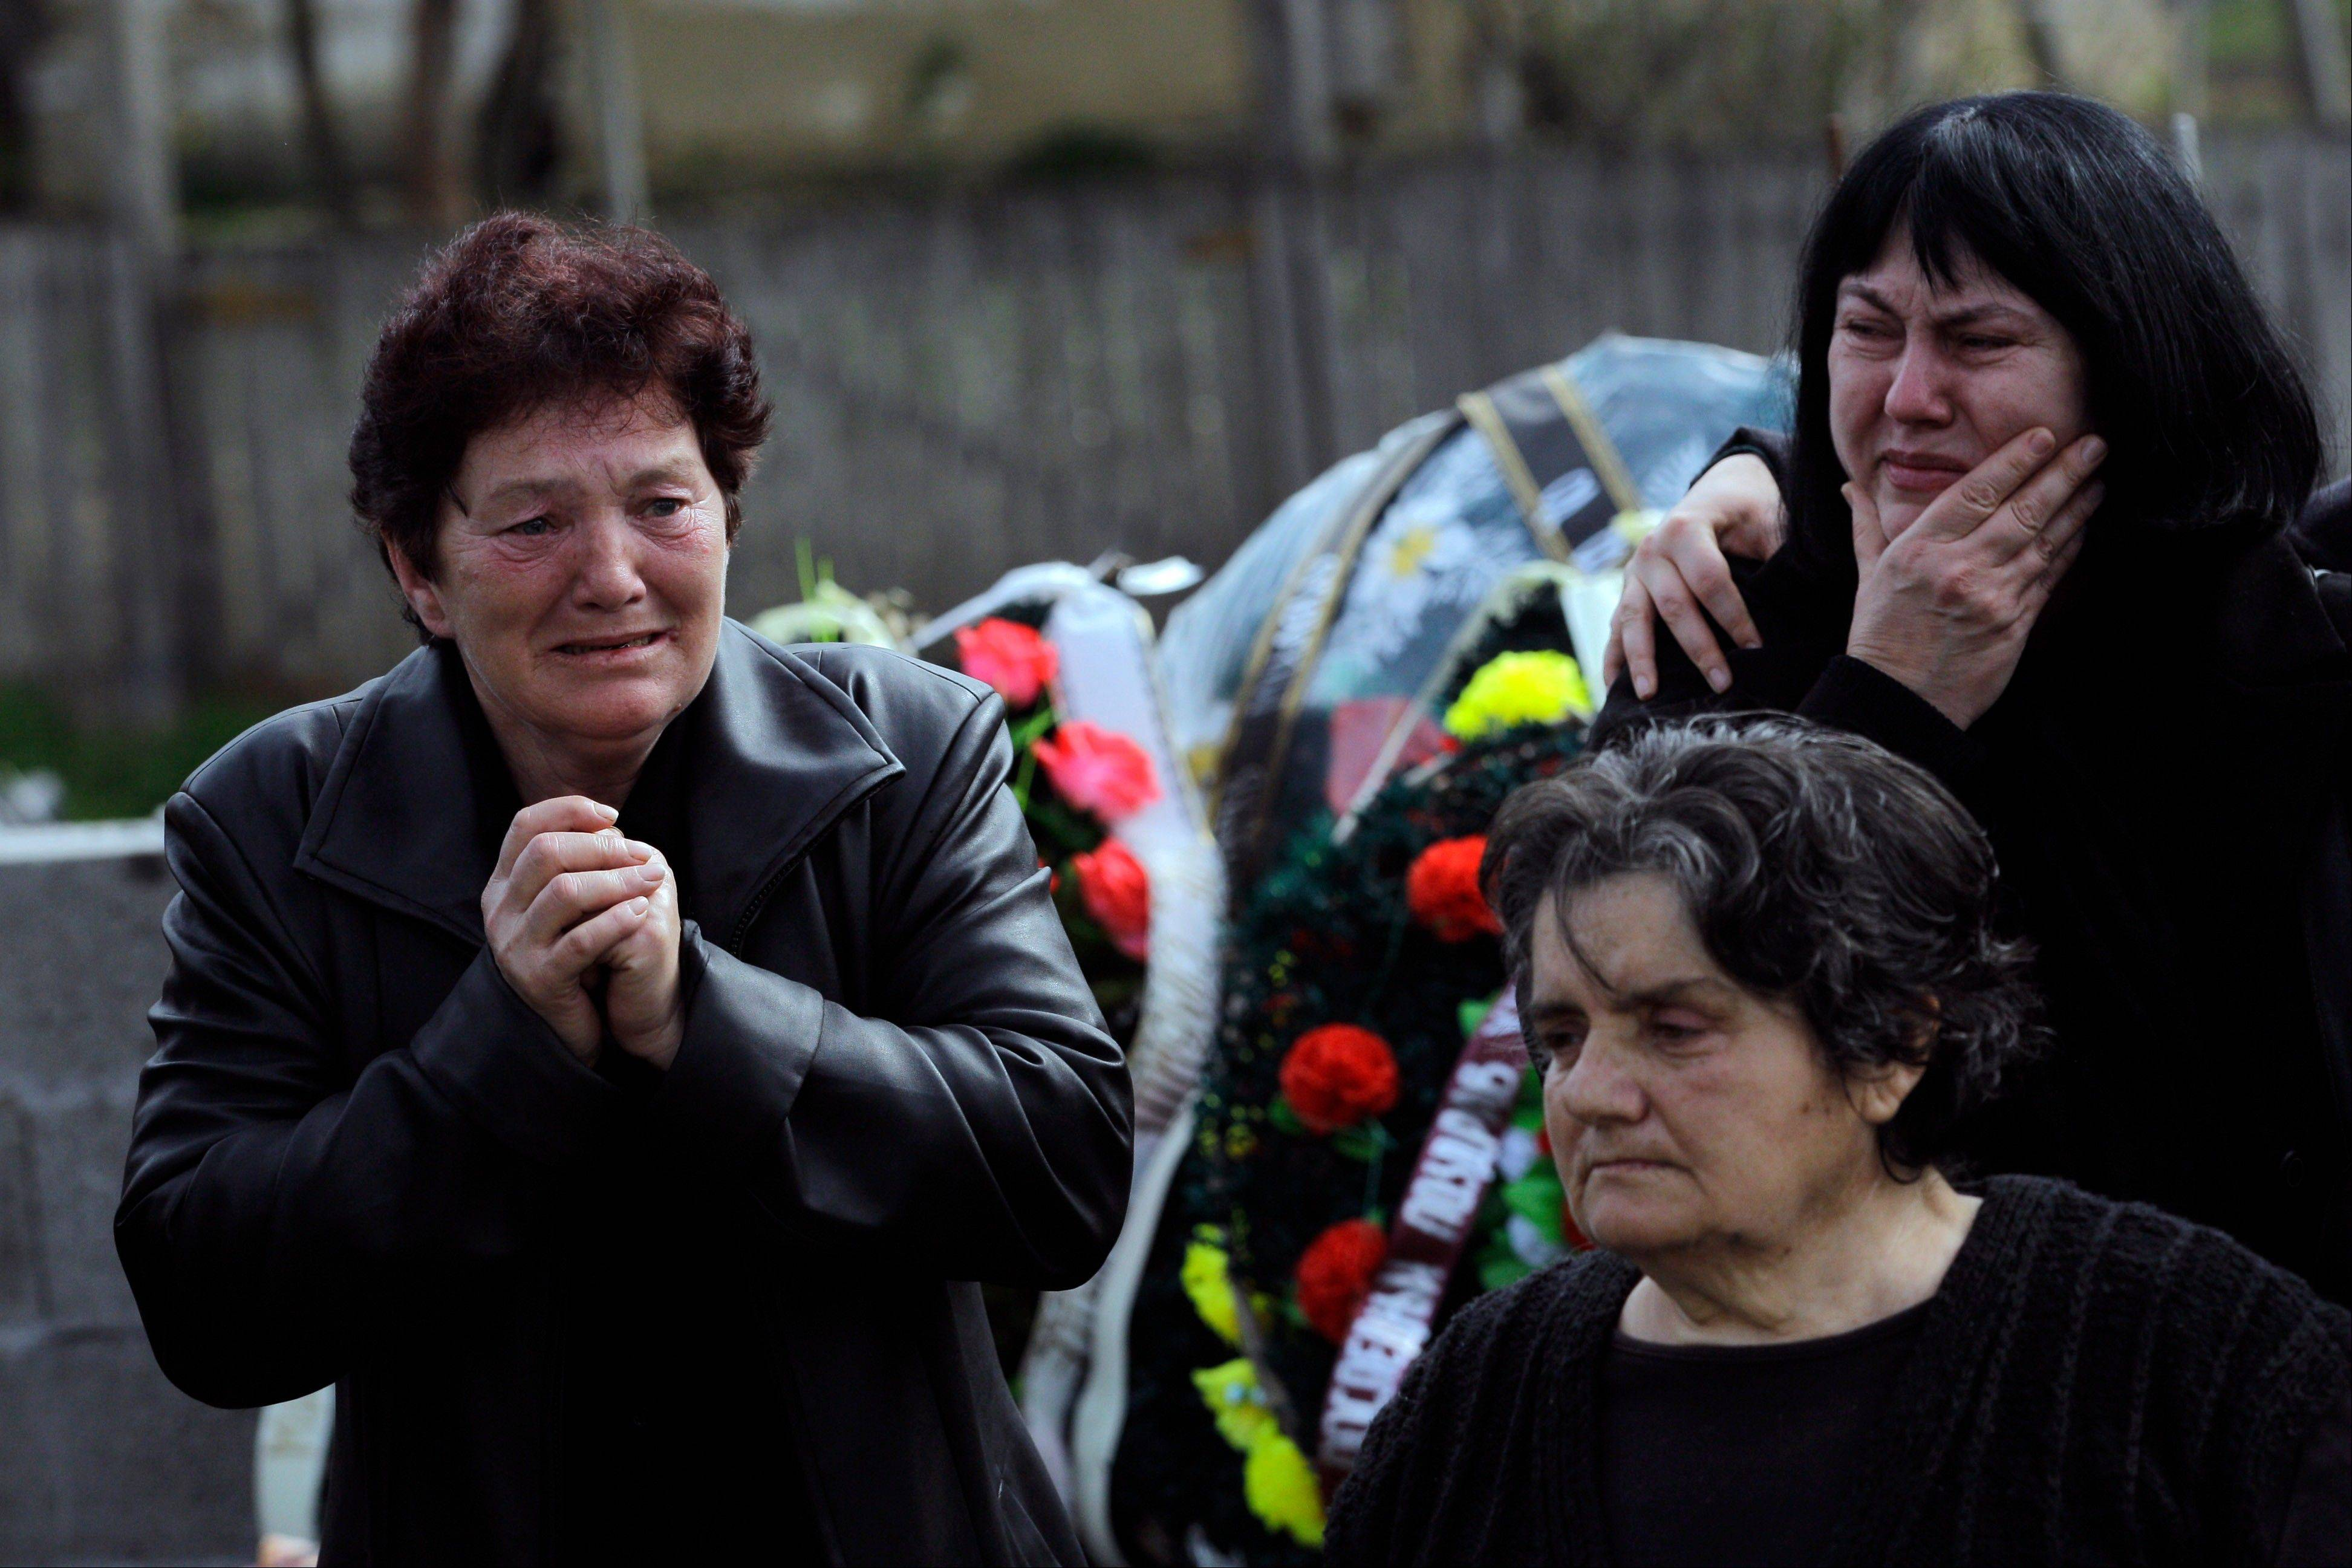 People react prior to a mass funeral of the victims of a shooting in the village of Velika Ivanca, some 30 miles southeast of Belgrade, Serbia, Friday, April 12, 2013. The village is preparing for the funerals of thirteen victims of a shooting that happened on Tuesday, April 9, 2013.